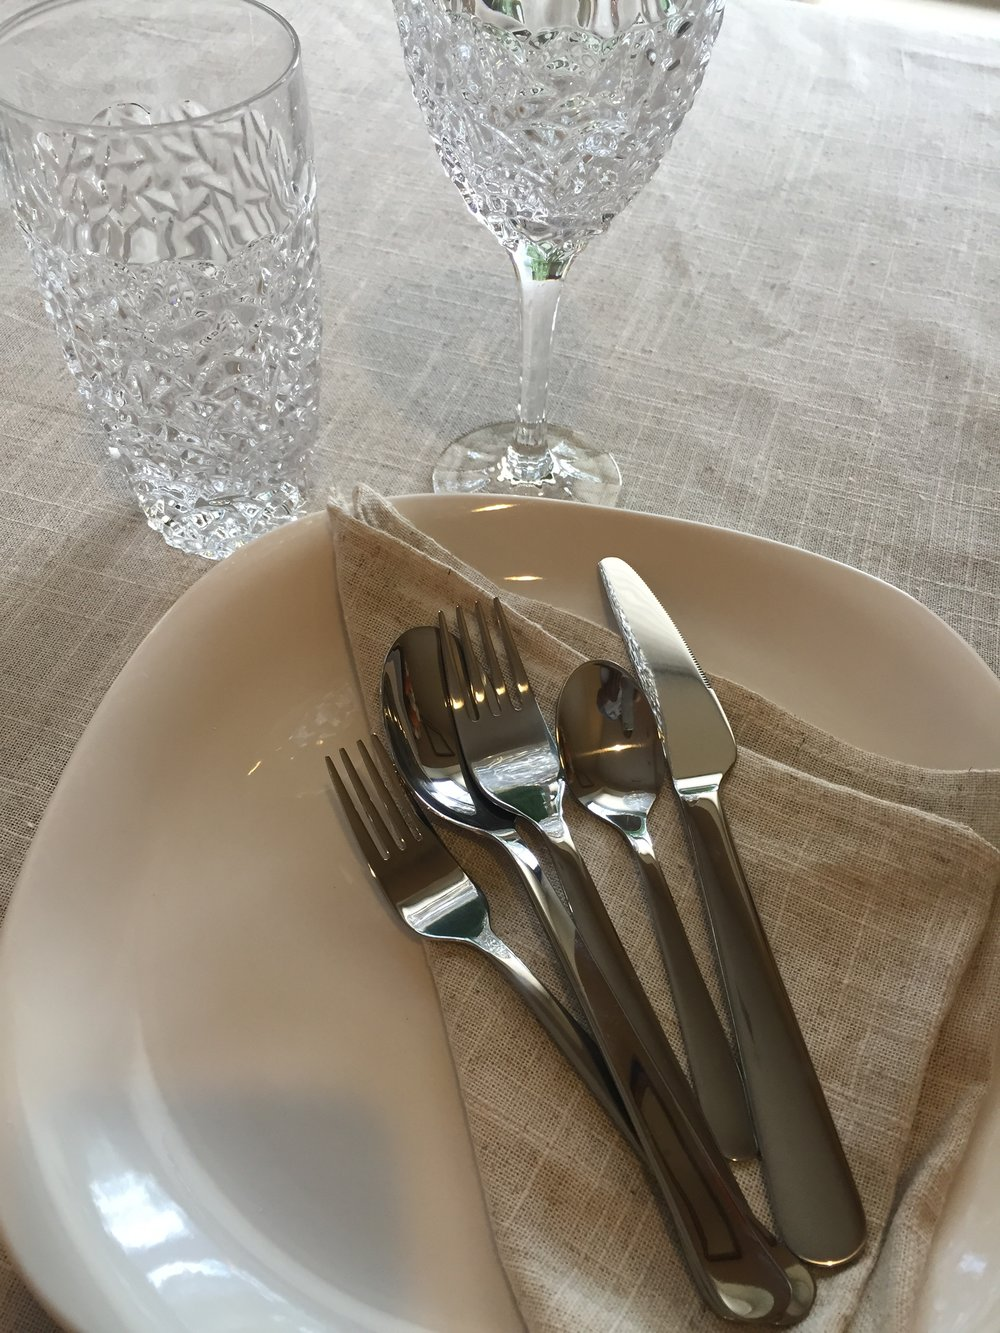 USE 4-6 PLACE SETTINGS